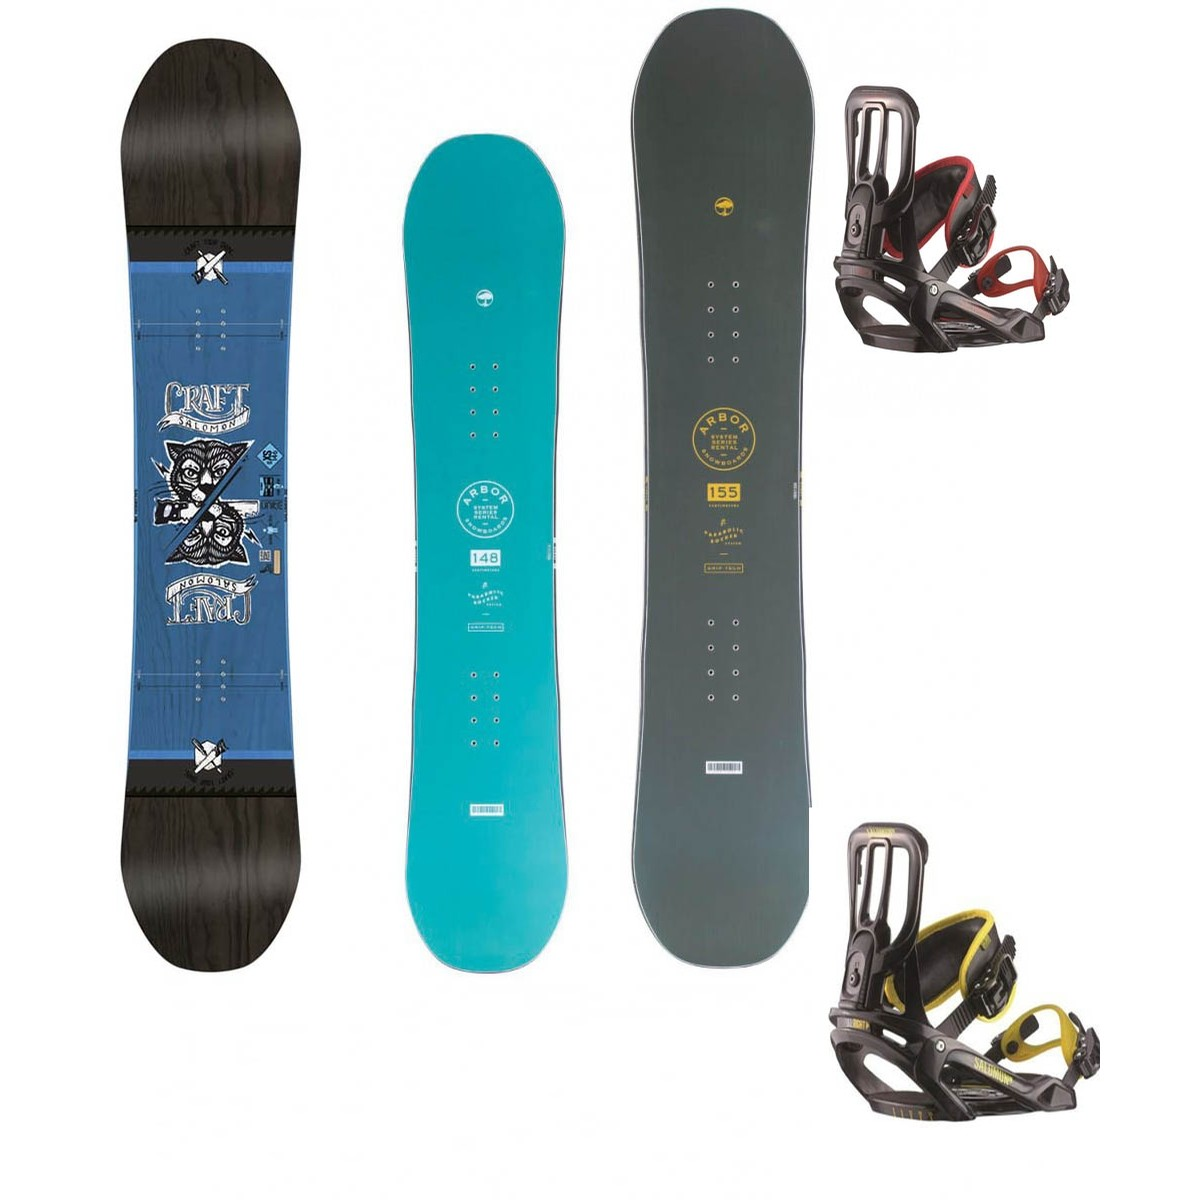 Basic board and bindings only